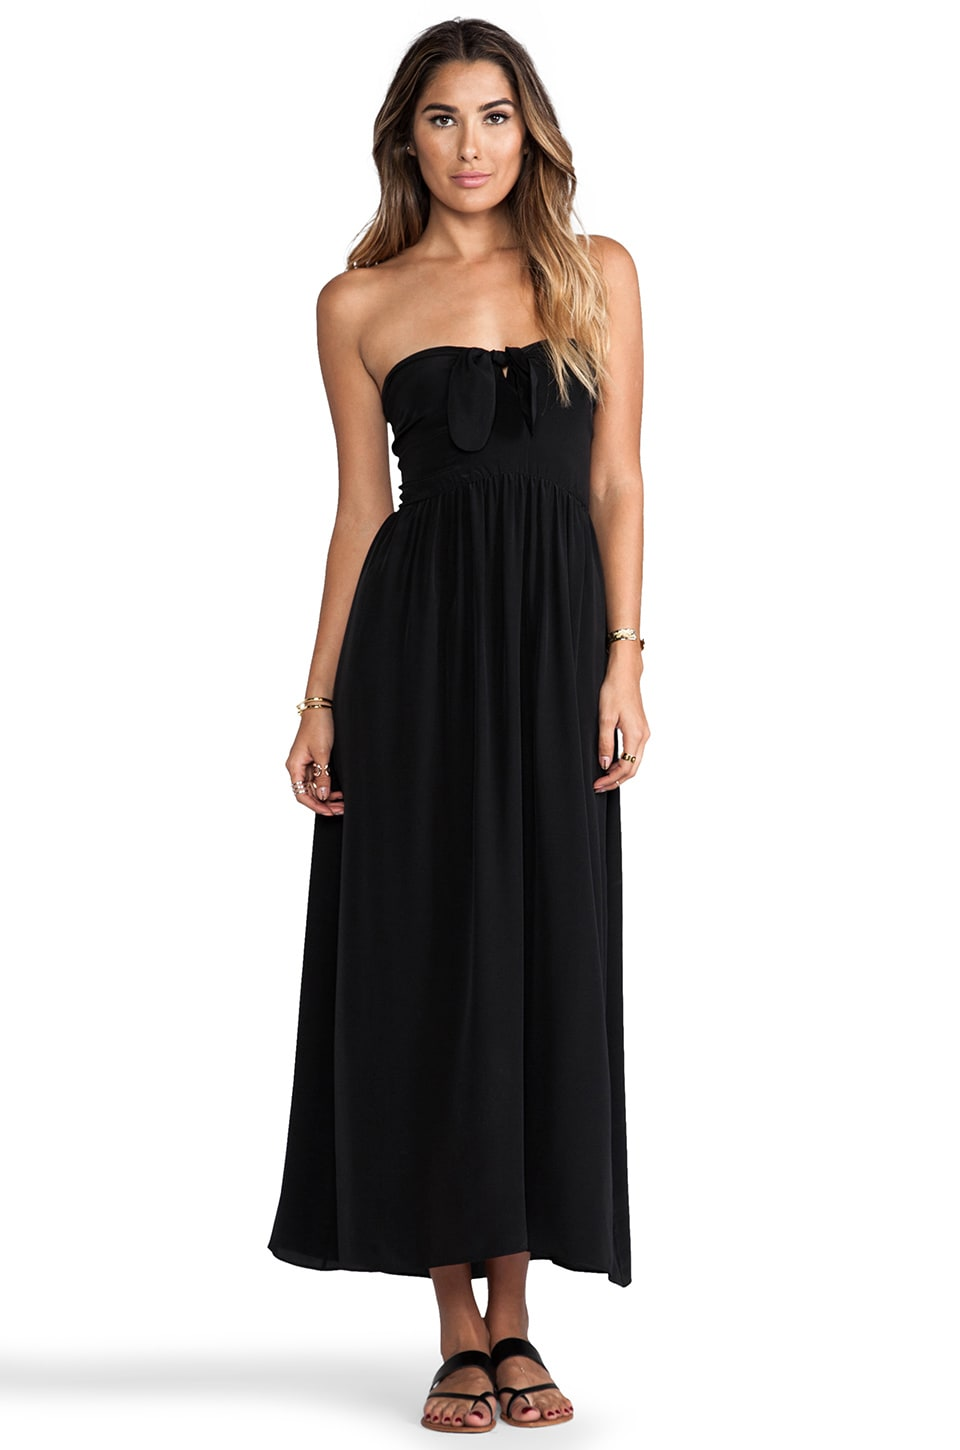 zinke Zoe Dress in Black